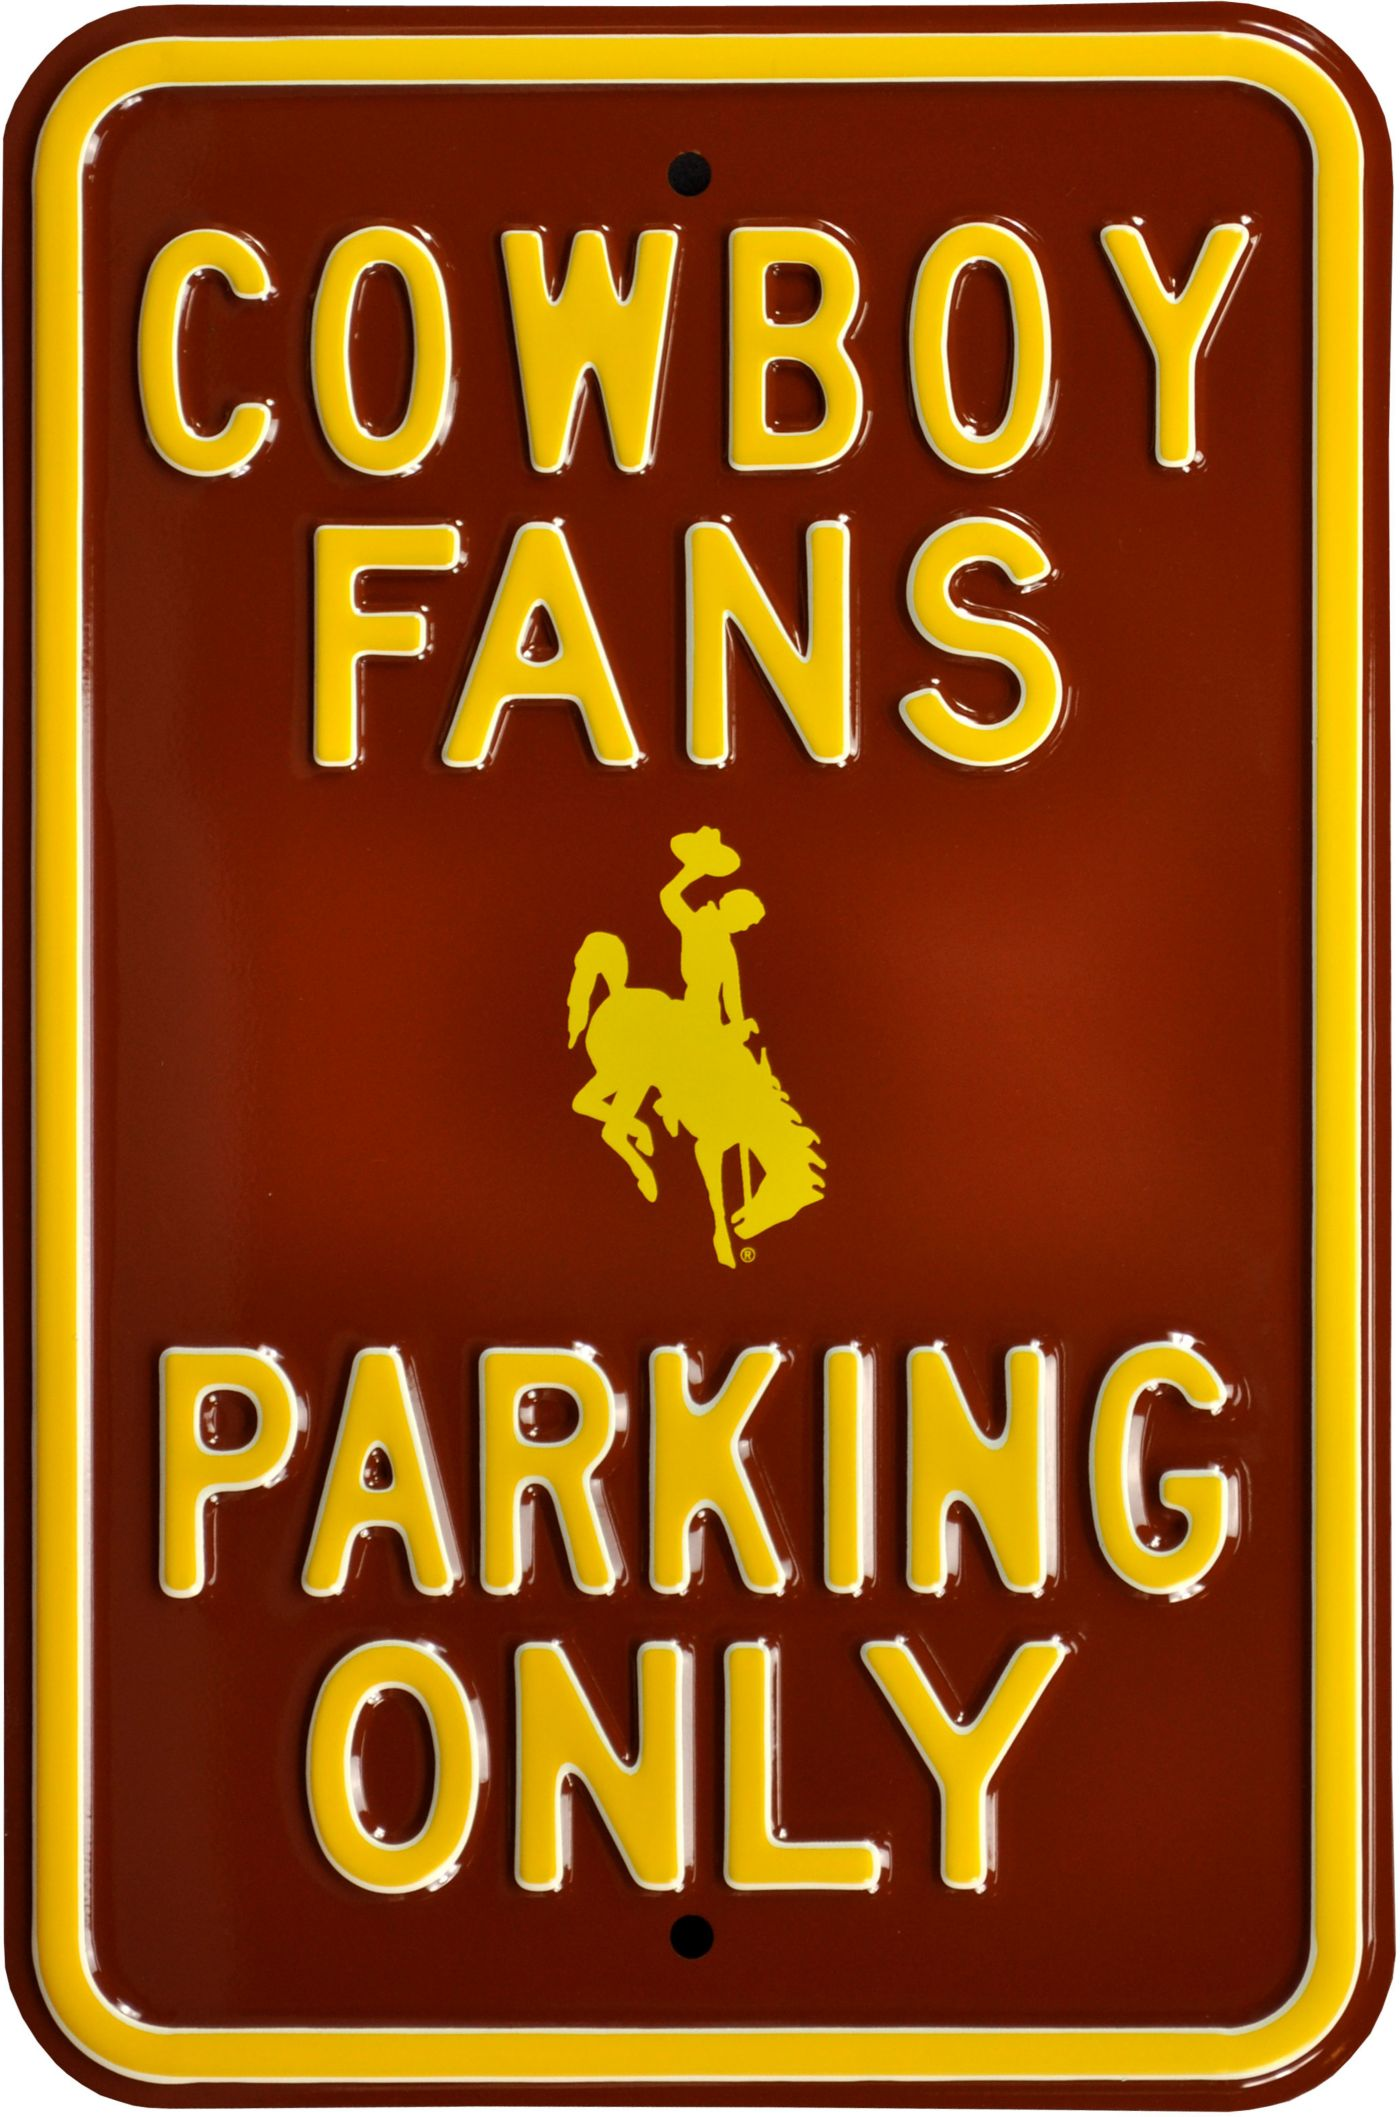 Authentic Street Signs Wyoming Cowboys Fans Parking Sign